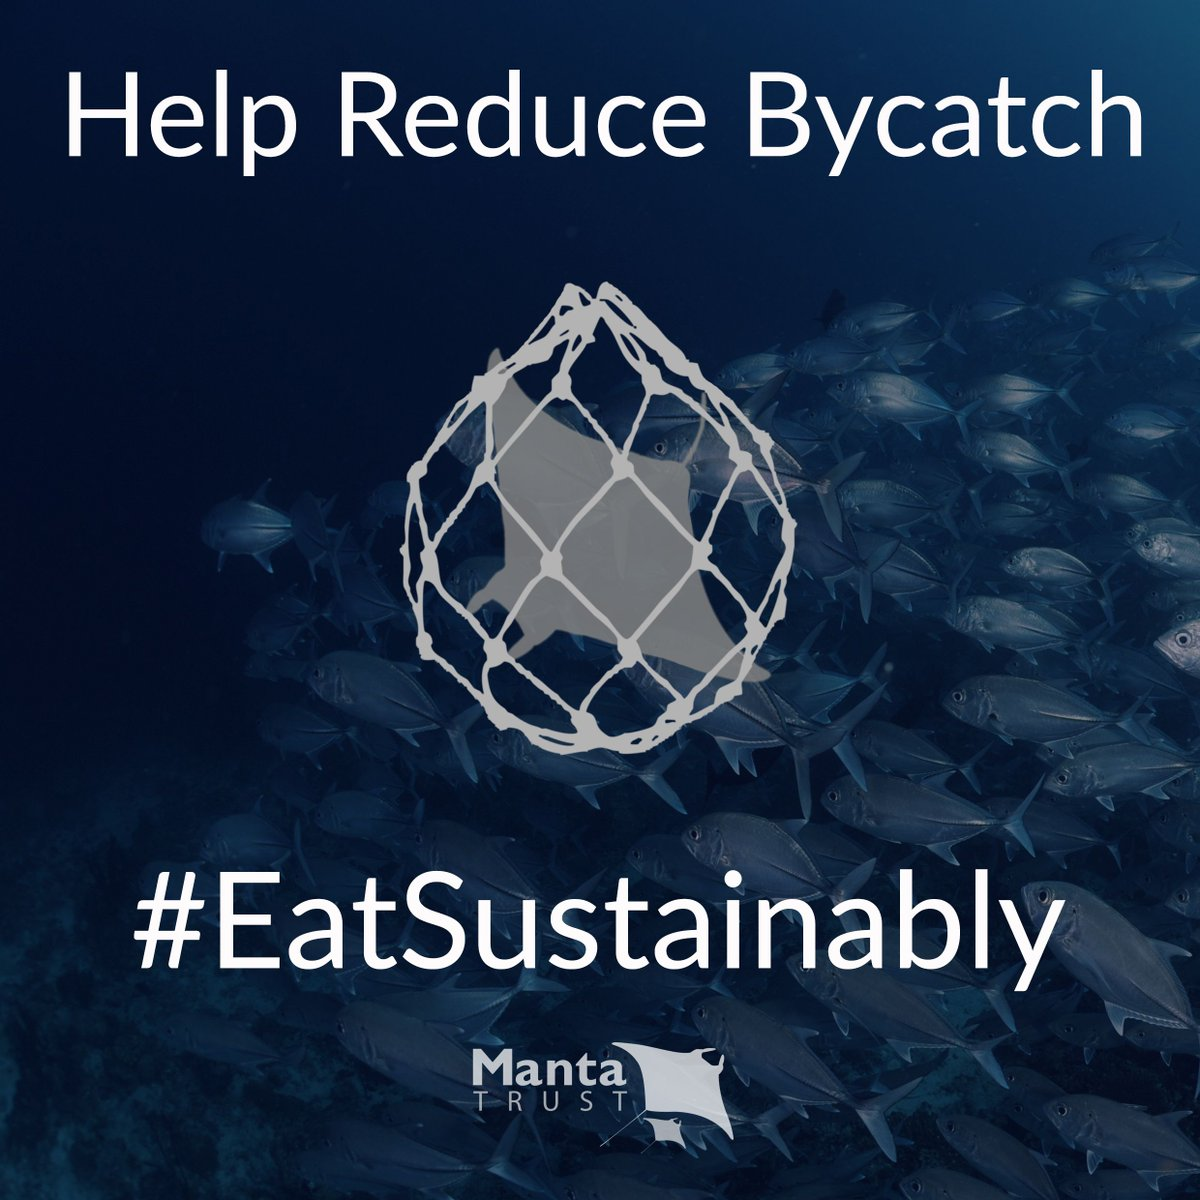 BYCATCH . . . it&#39;s one of the biggest threats to #mantarays and #devilrays - thousands are killed incidentally in high seas fisheries each year.    But YOU CAN HELP check out our top 5 tips to   http:// bit.ly/2WxegTw  &nbsp;     #reducebycatch #eatsustainably @mcsuk @saveourseas<br>http://pic.twitter.com/HEWFXFbp3N